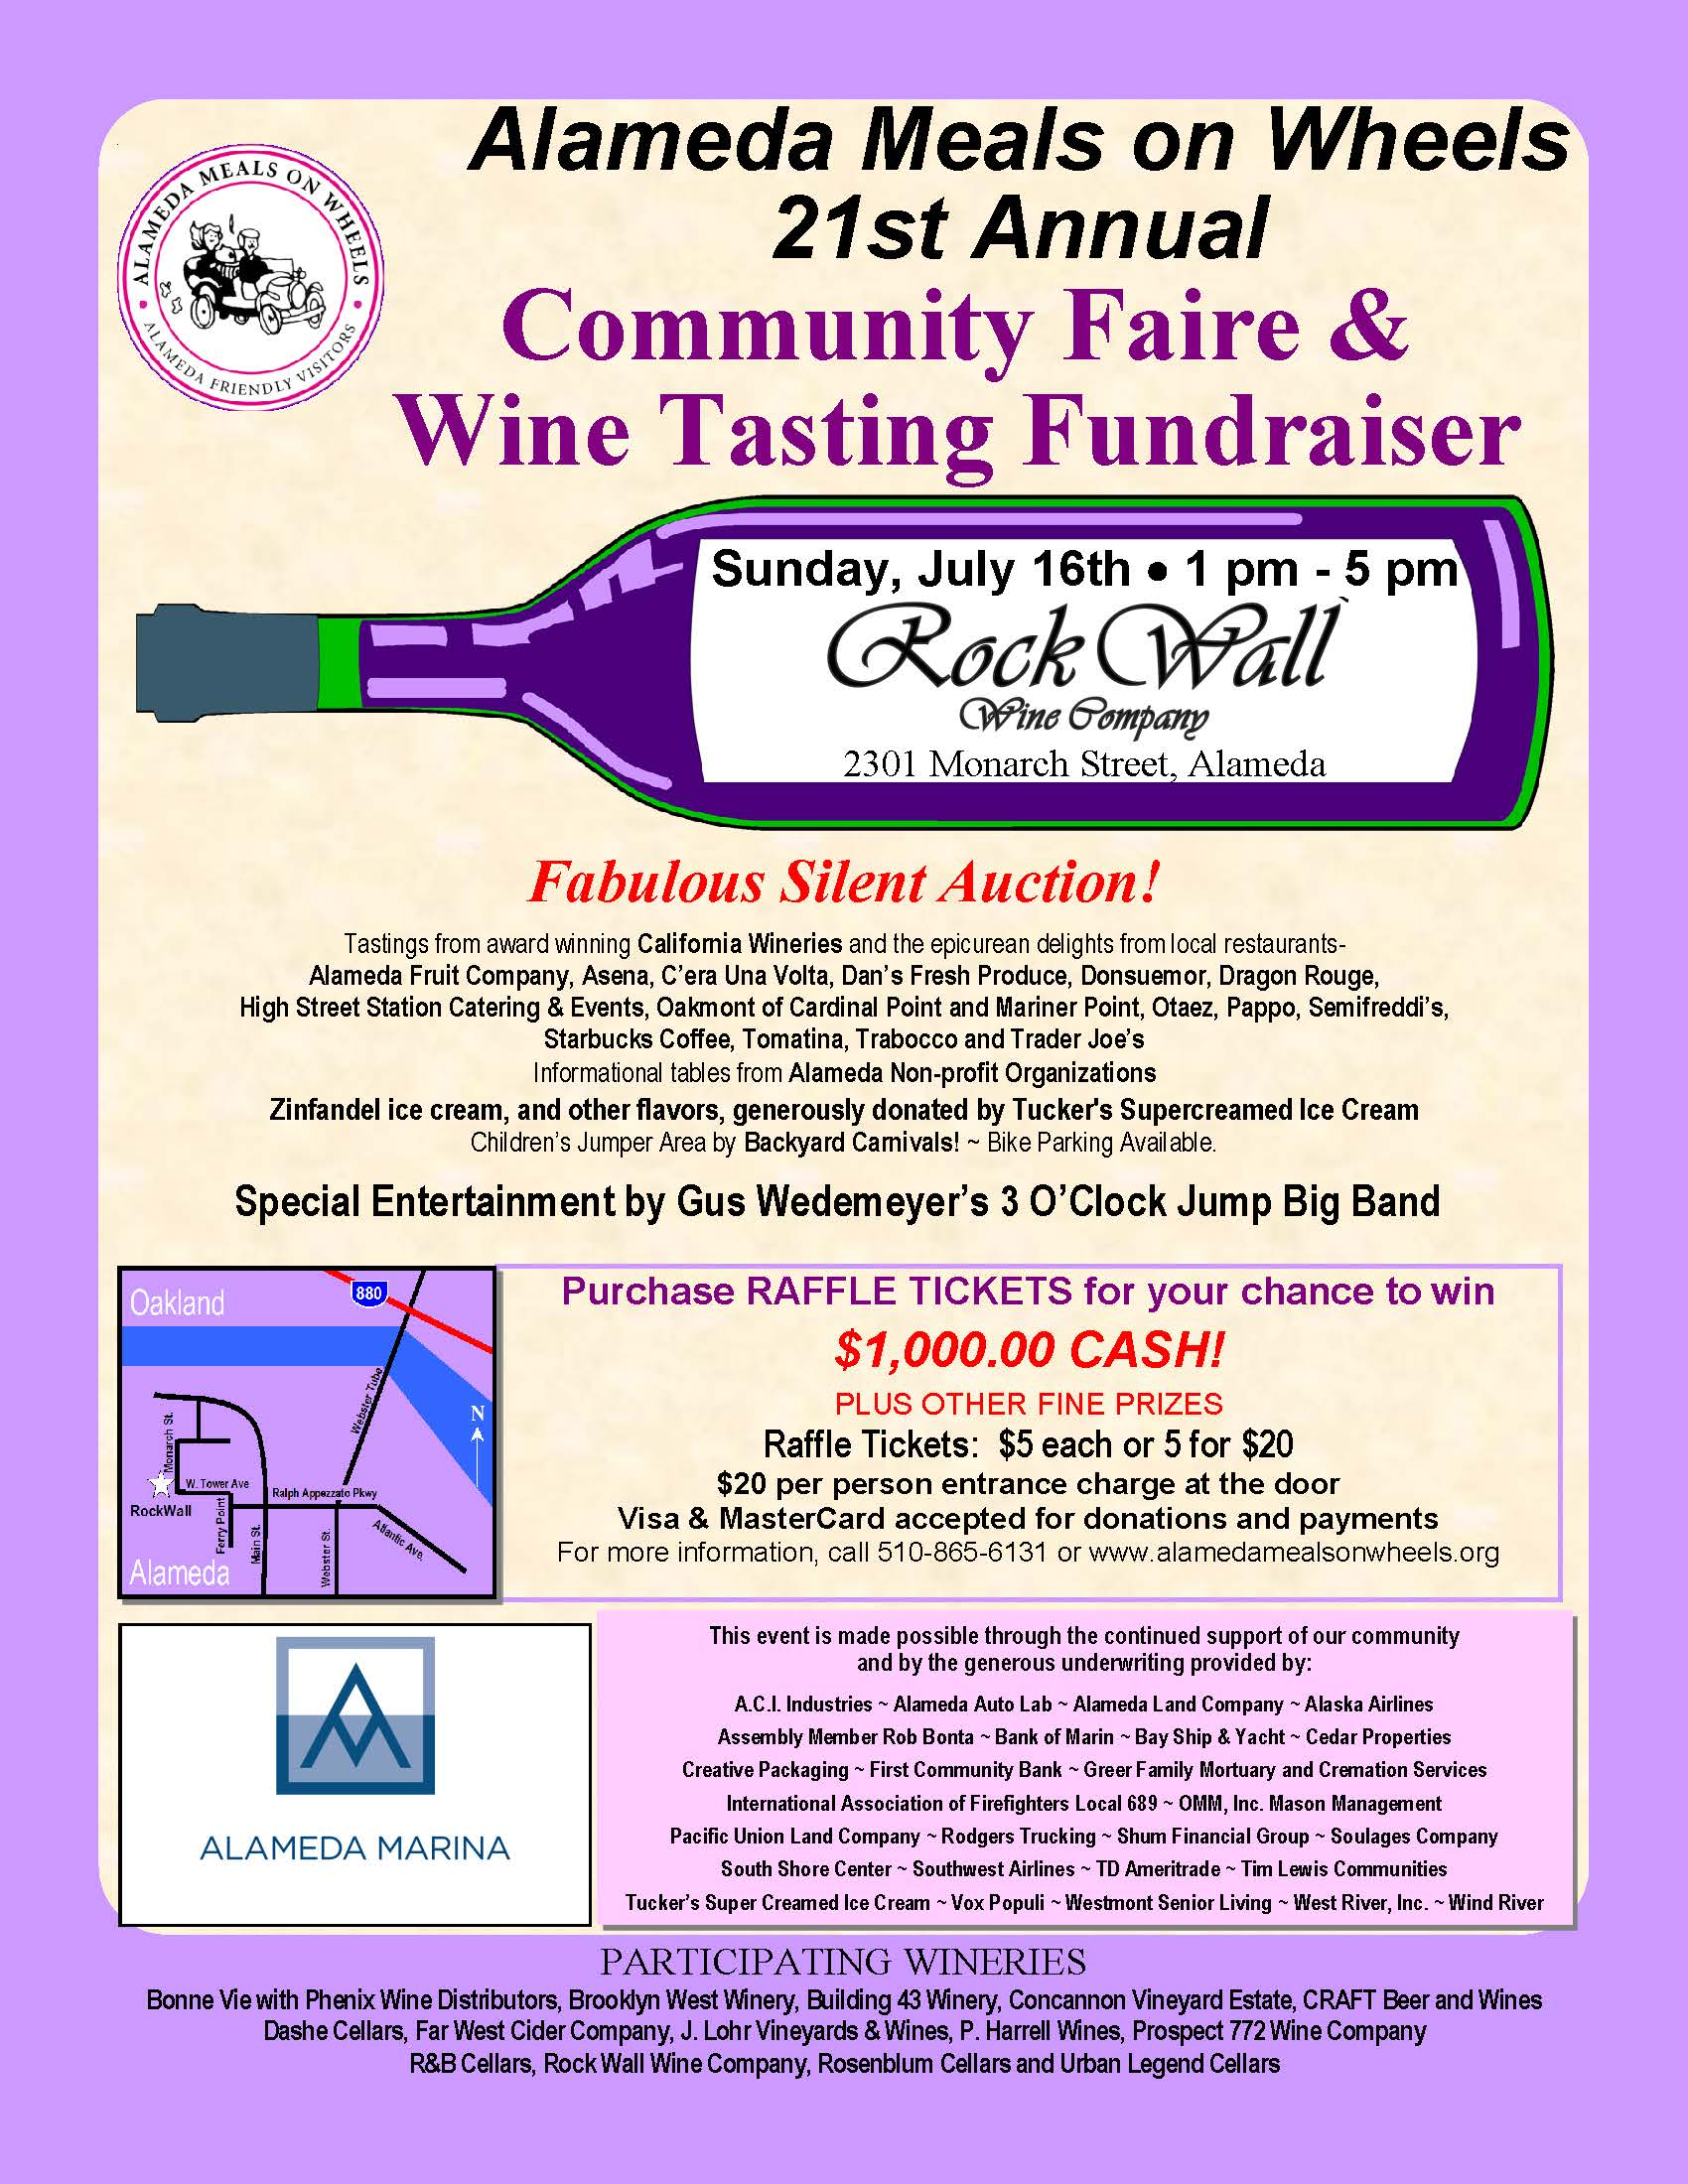 Alameda Meals on Wheels Event